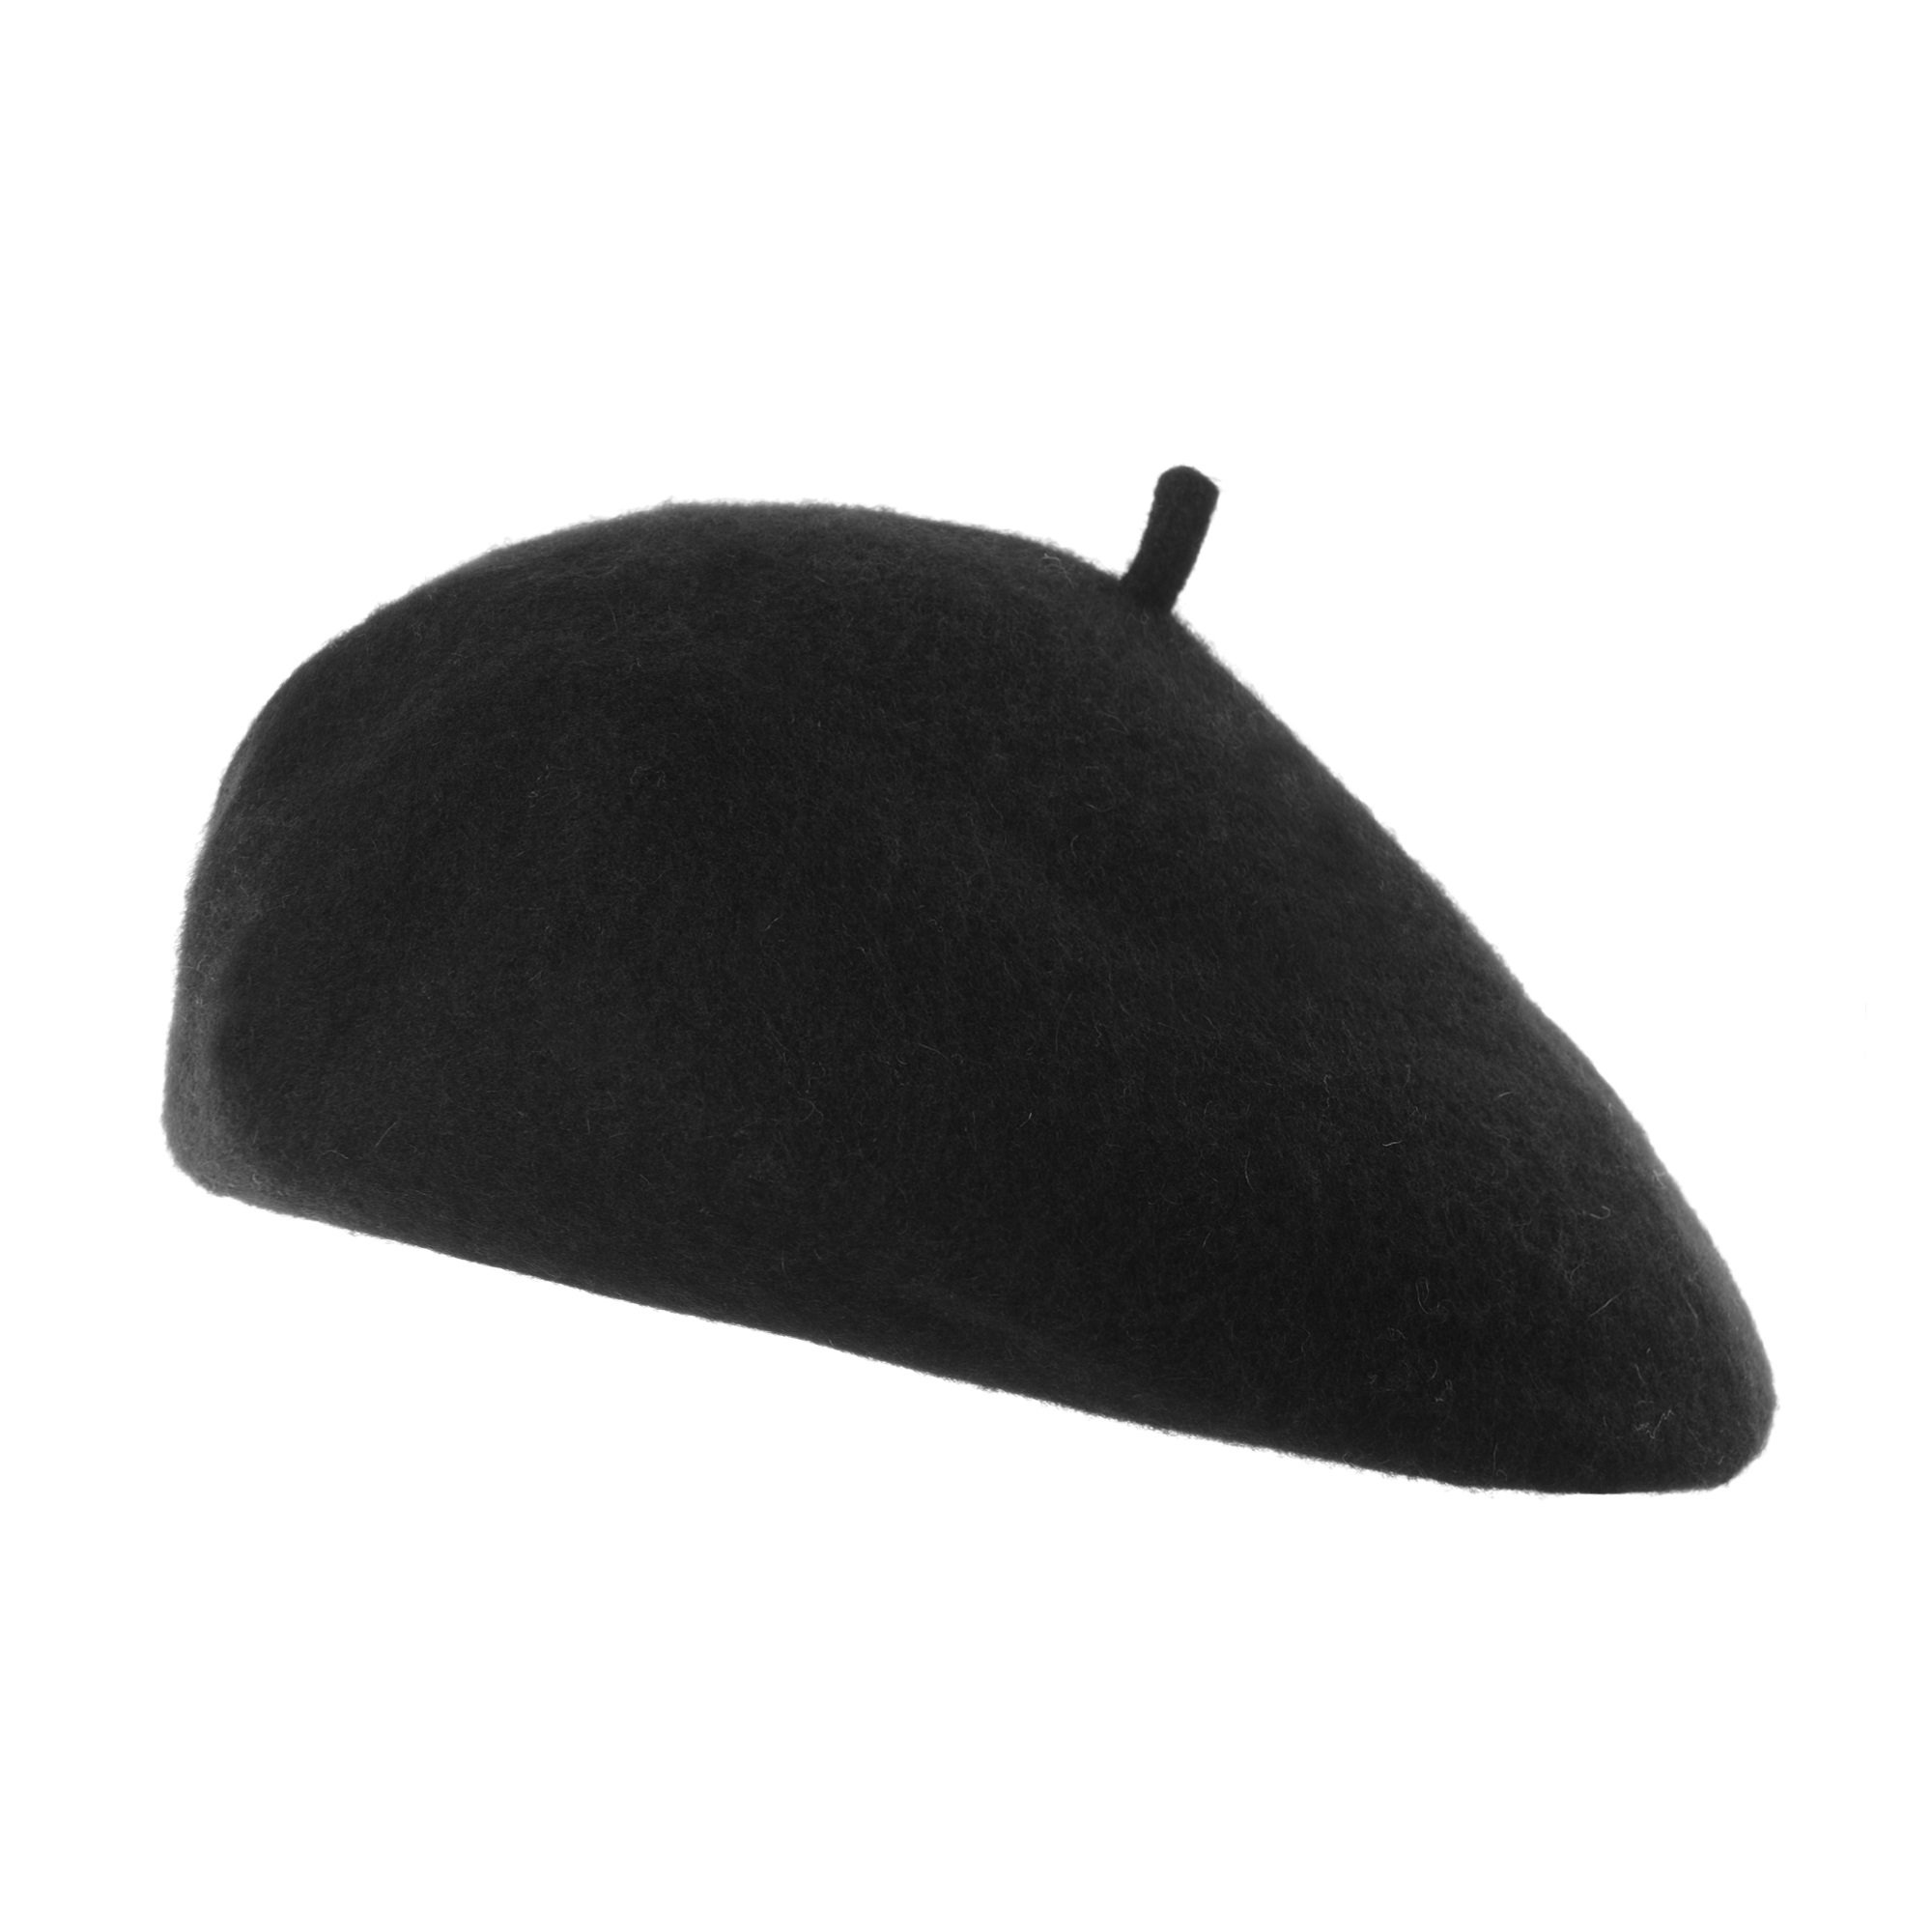 WITHMOONS Wool Beret Hat Warm Winter French Style KR9538 (Black)